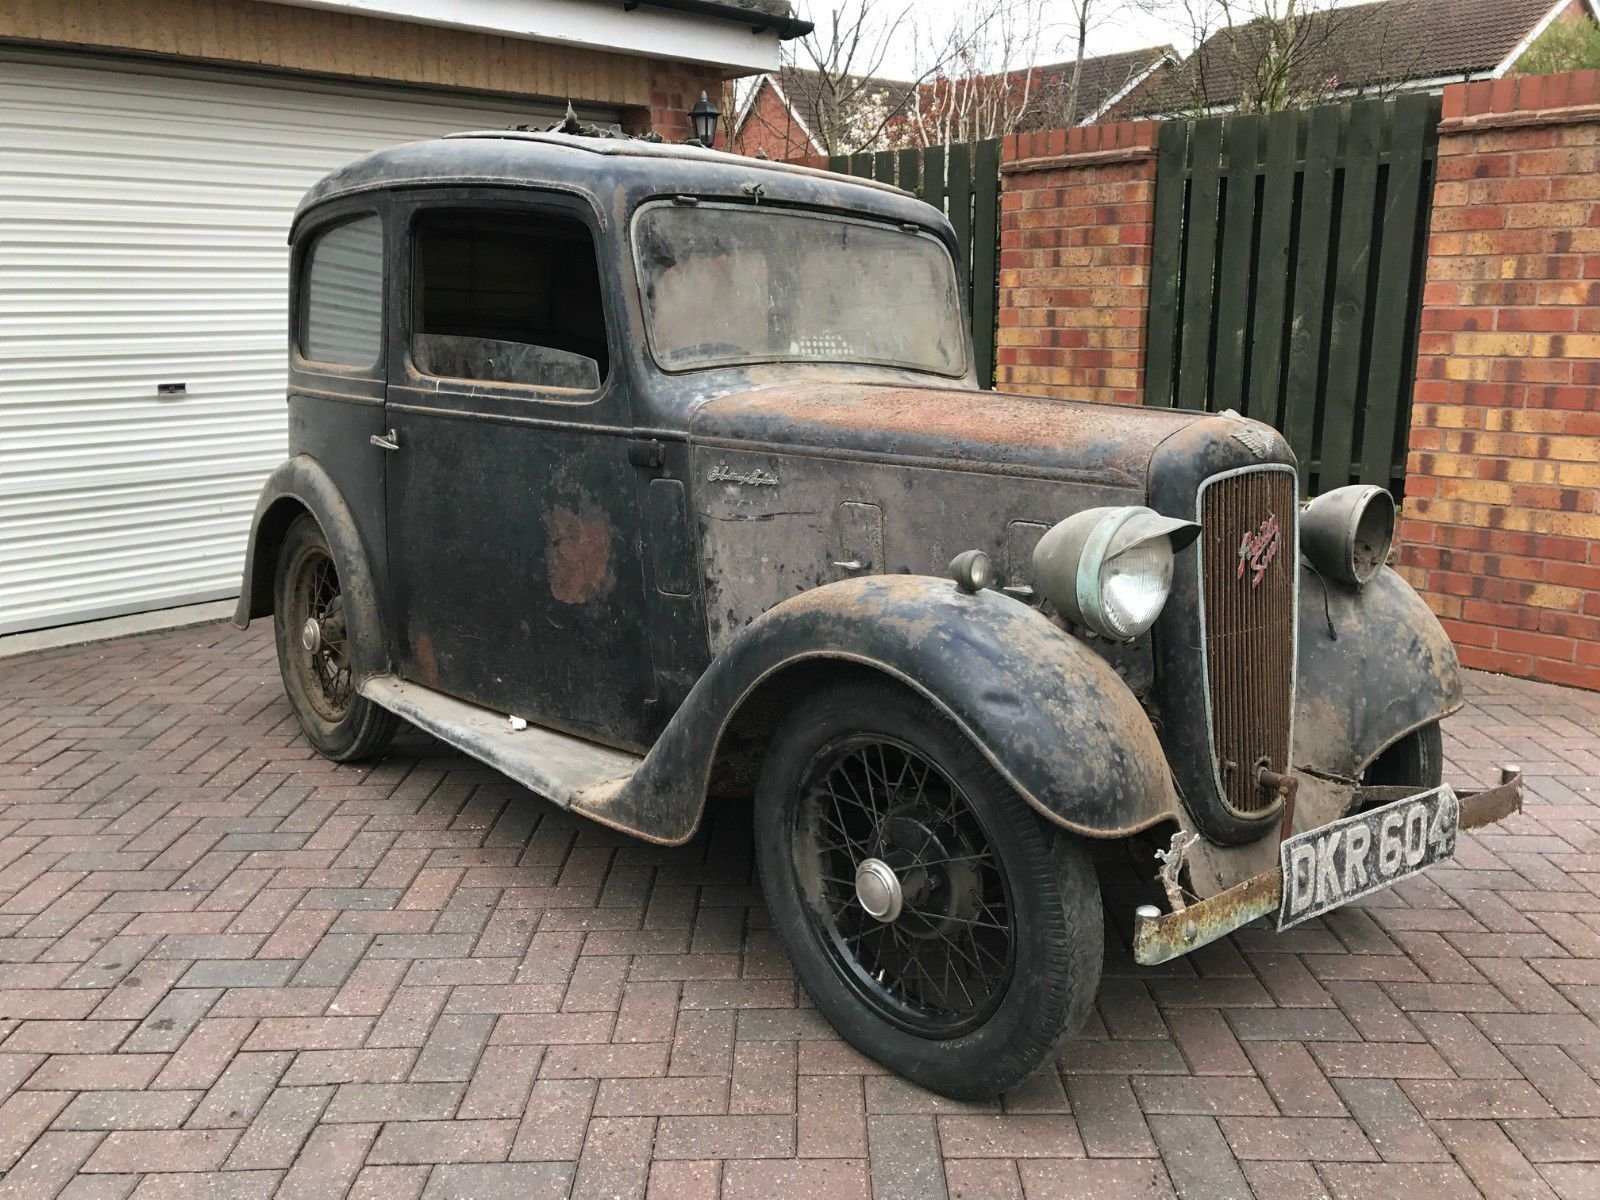 Austin Seven 7 Ruby 1937 - Beautifully preserved barn find classic ...